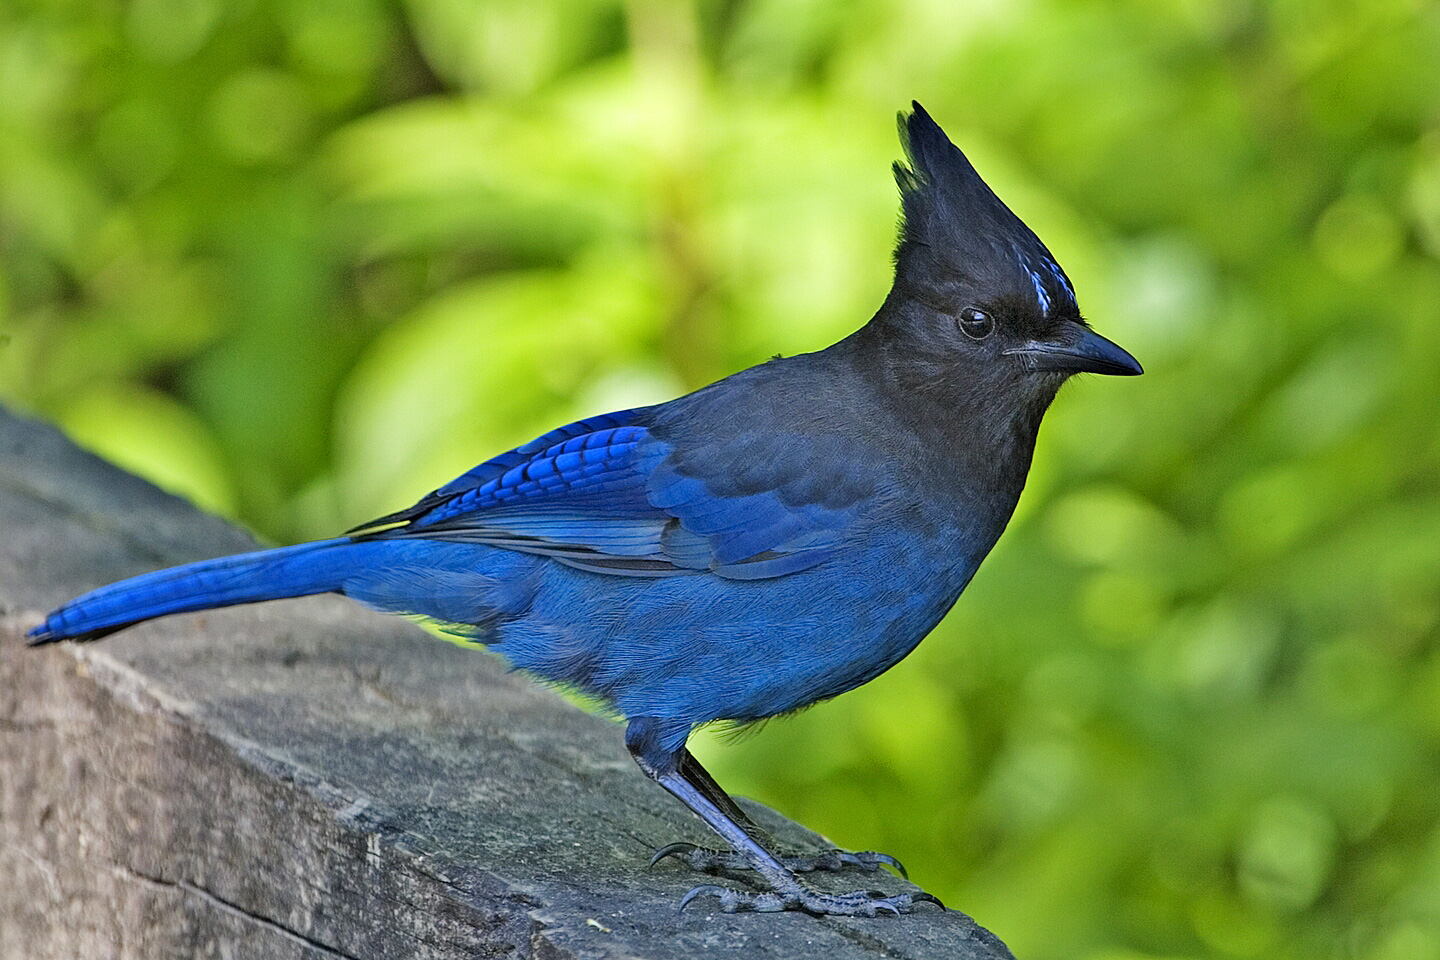 Steller's Jay is named after the German naturalist Georg Steller